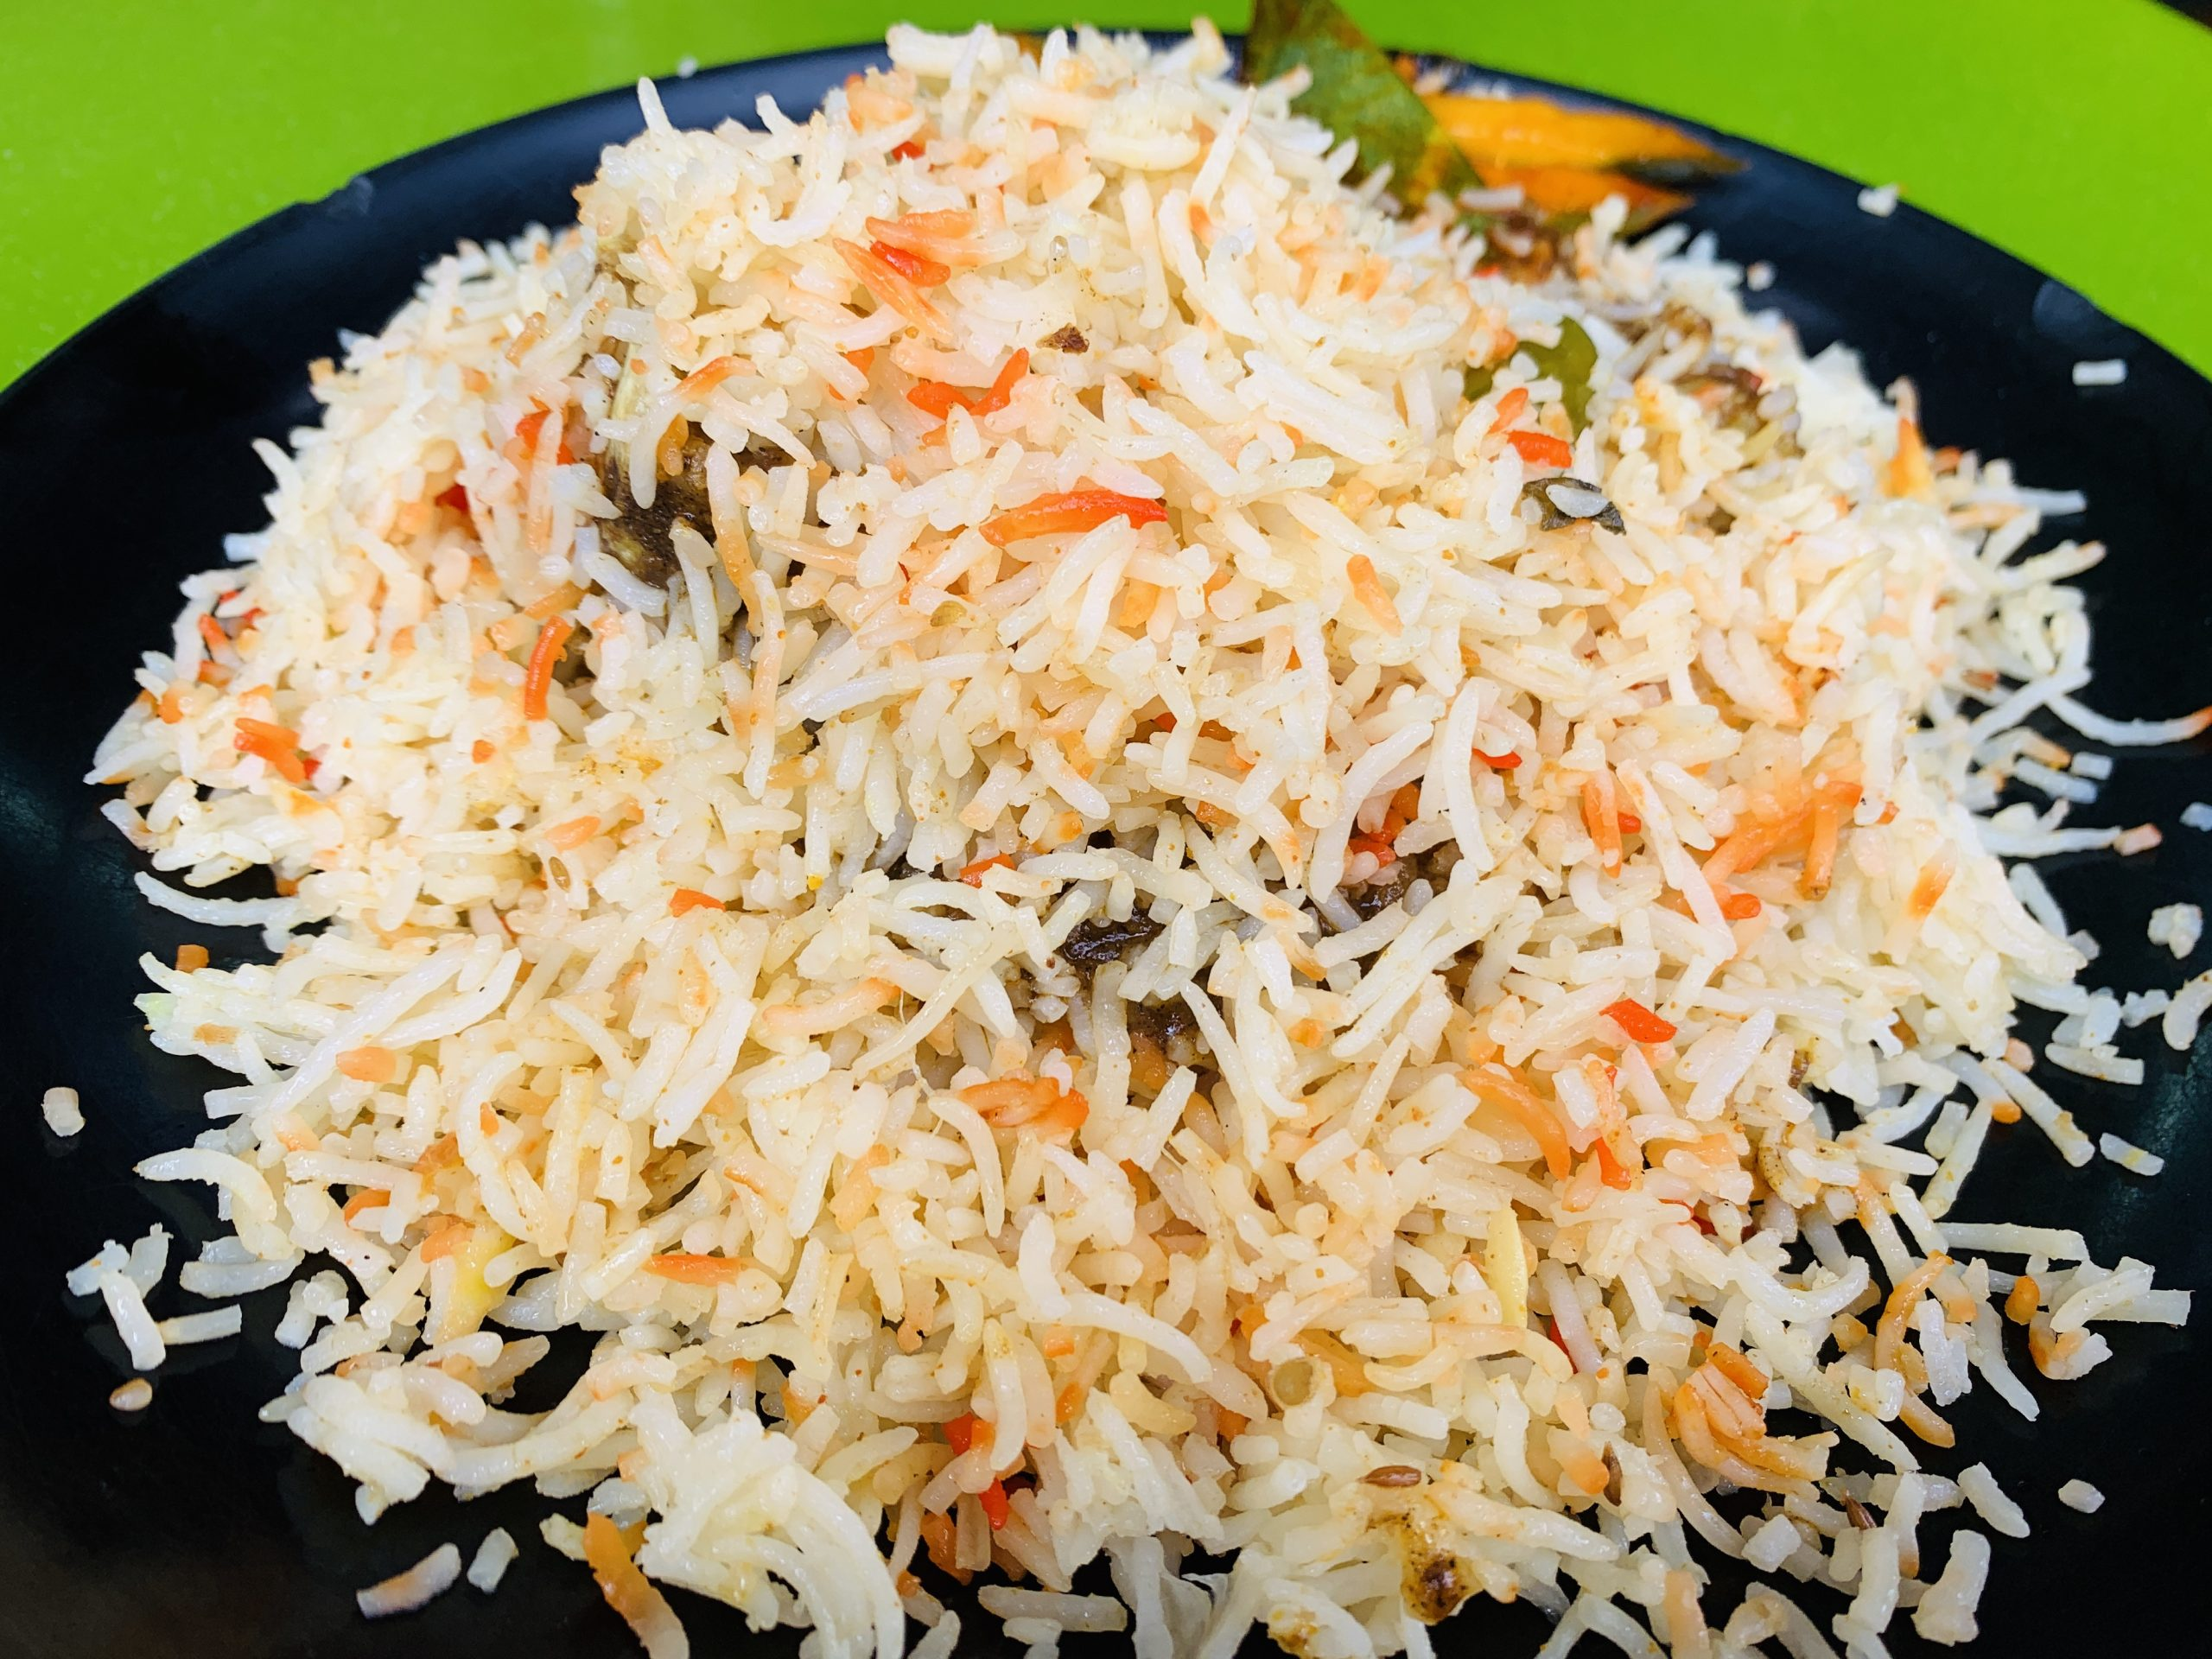 Singapore Zam Zam - Mutton Briyani